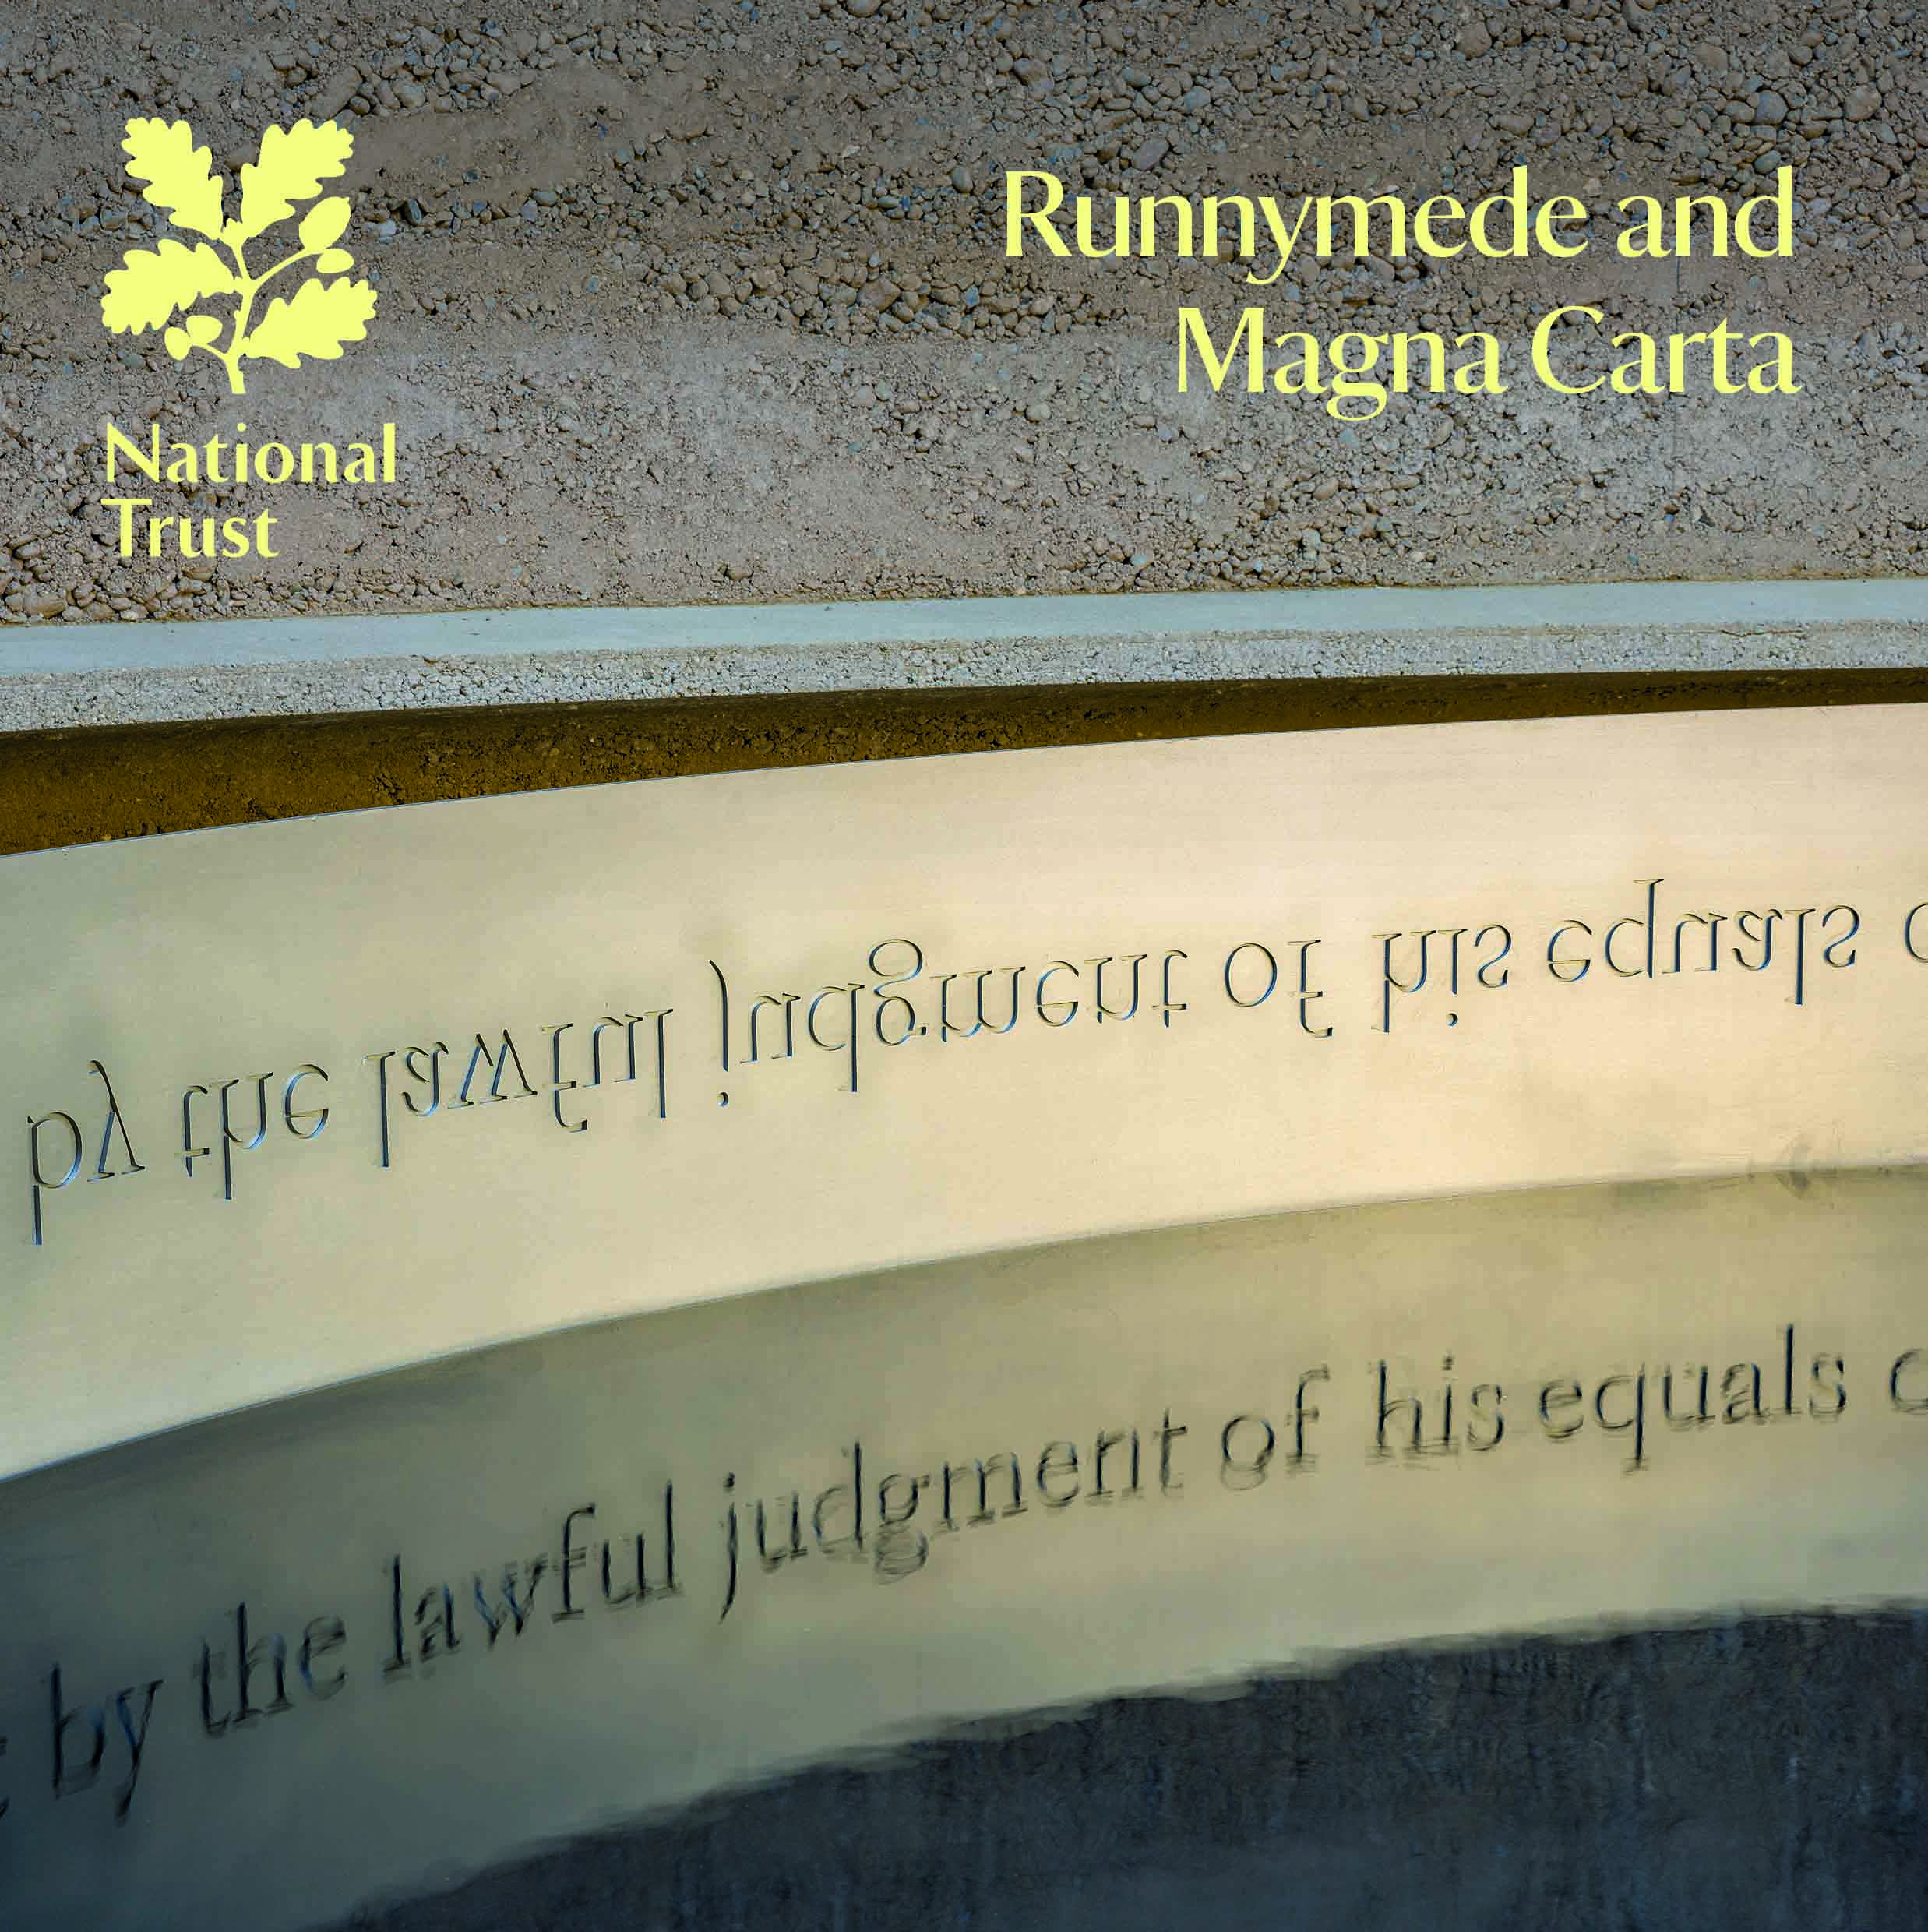 Runnymede and Magna Carta